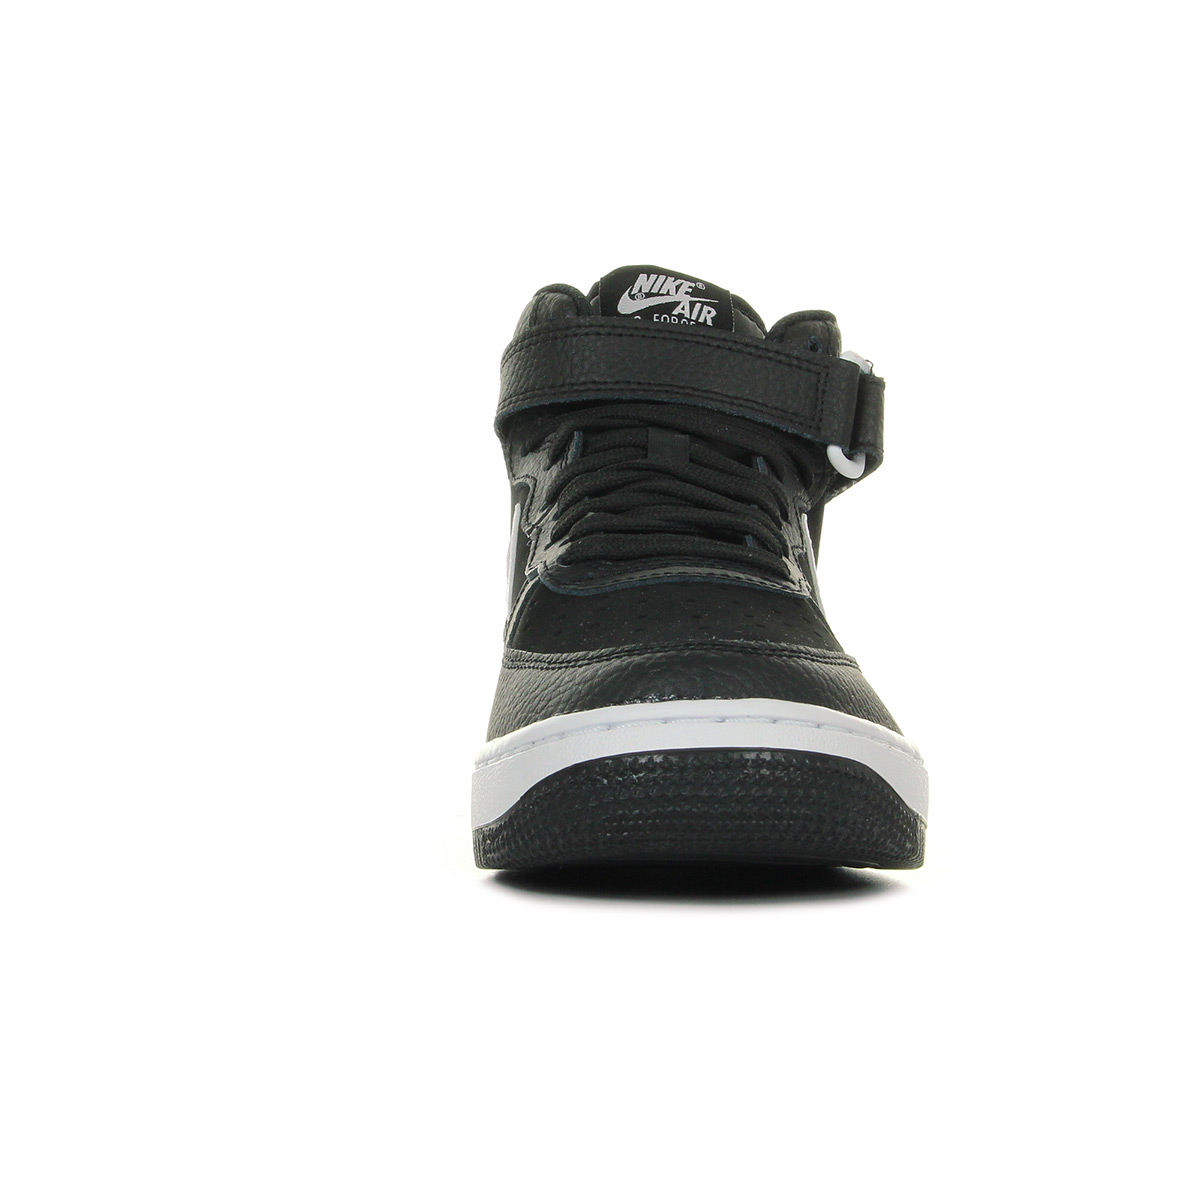 nike air force 1 mid gs 314195038 baskets mode